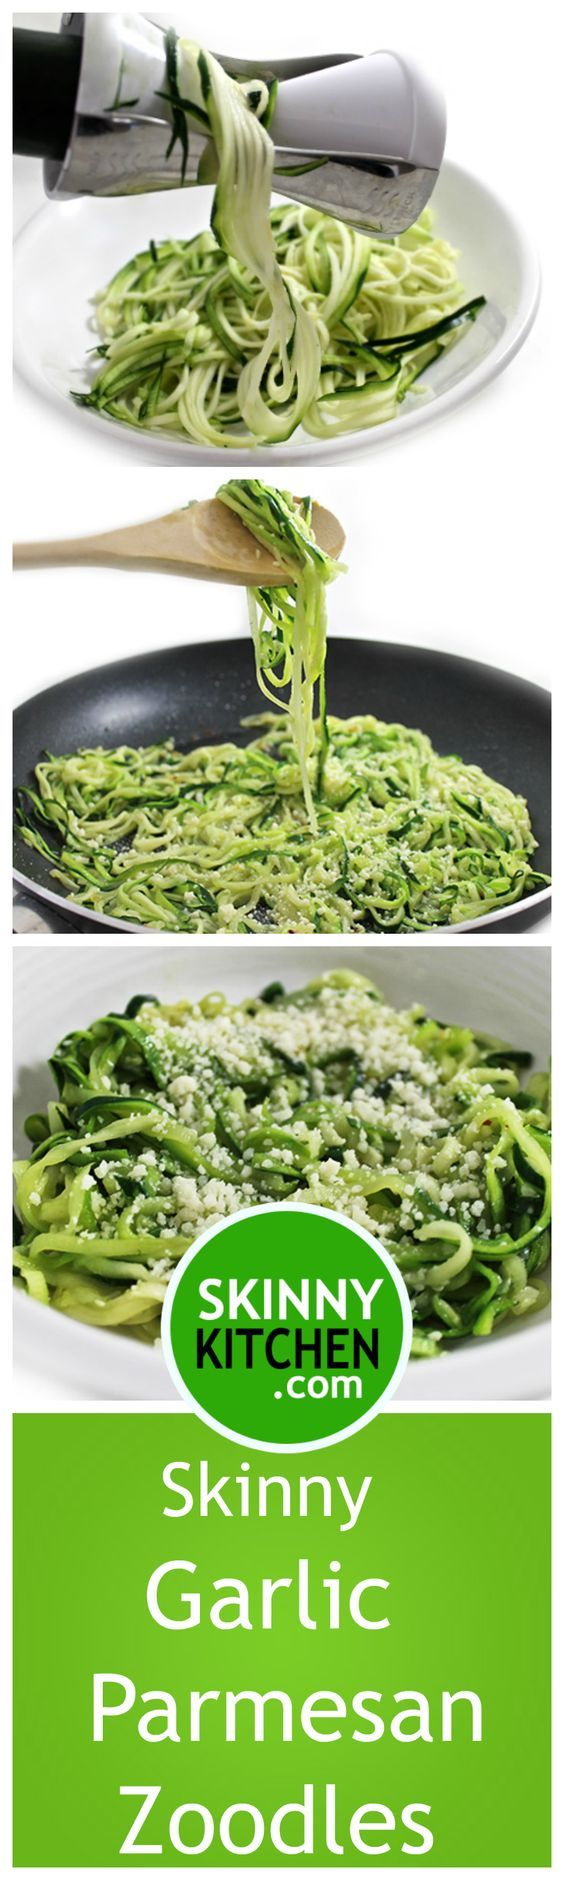 Skinny Garlic Parmesan Zoodles. It's sooo dreamy good. Makes a wonderful side dish to chicken, beef, pork or fish and works wonders topped with pasta sauce. Each serving, 135 calories, 8g fat & 3 Weight Watchers SmartPoints. http://www.skinnykitchen.com/recipes/skinny-garlic-parmesan-zoodles/